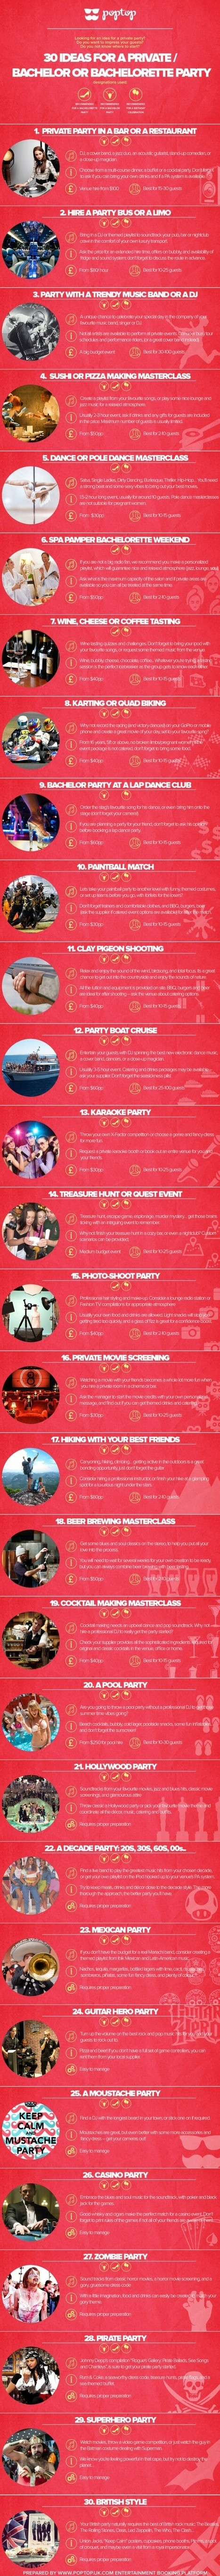 30 Best ideas for bachelor or bachelorette parties | The Best Infographics | Scoop.it